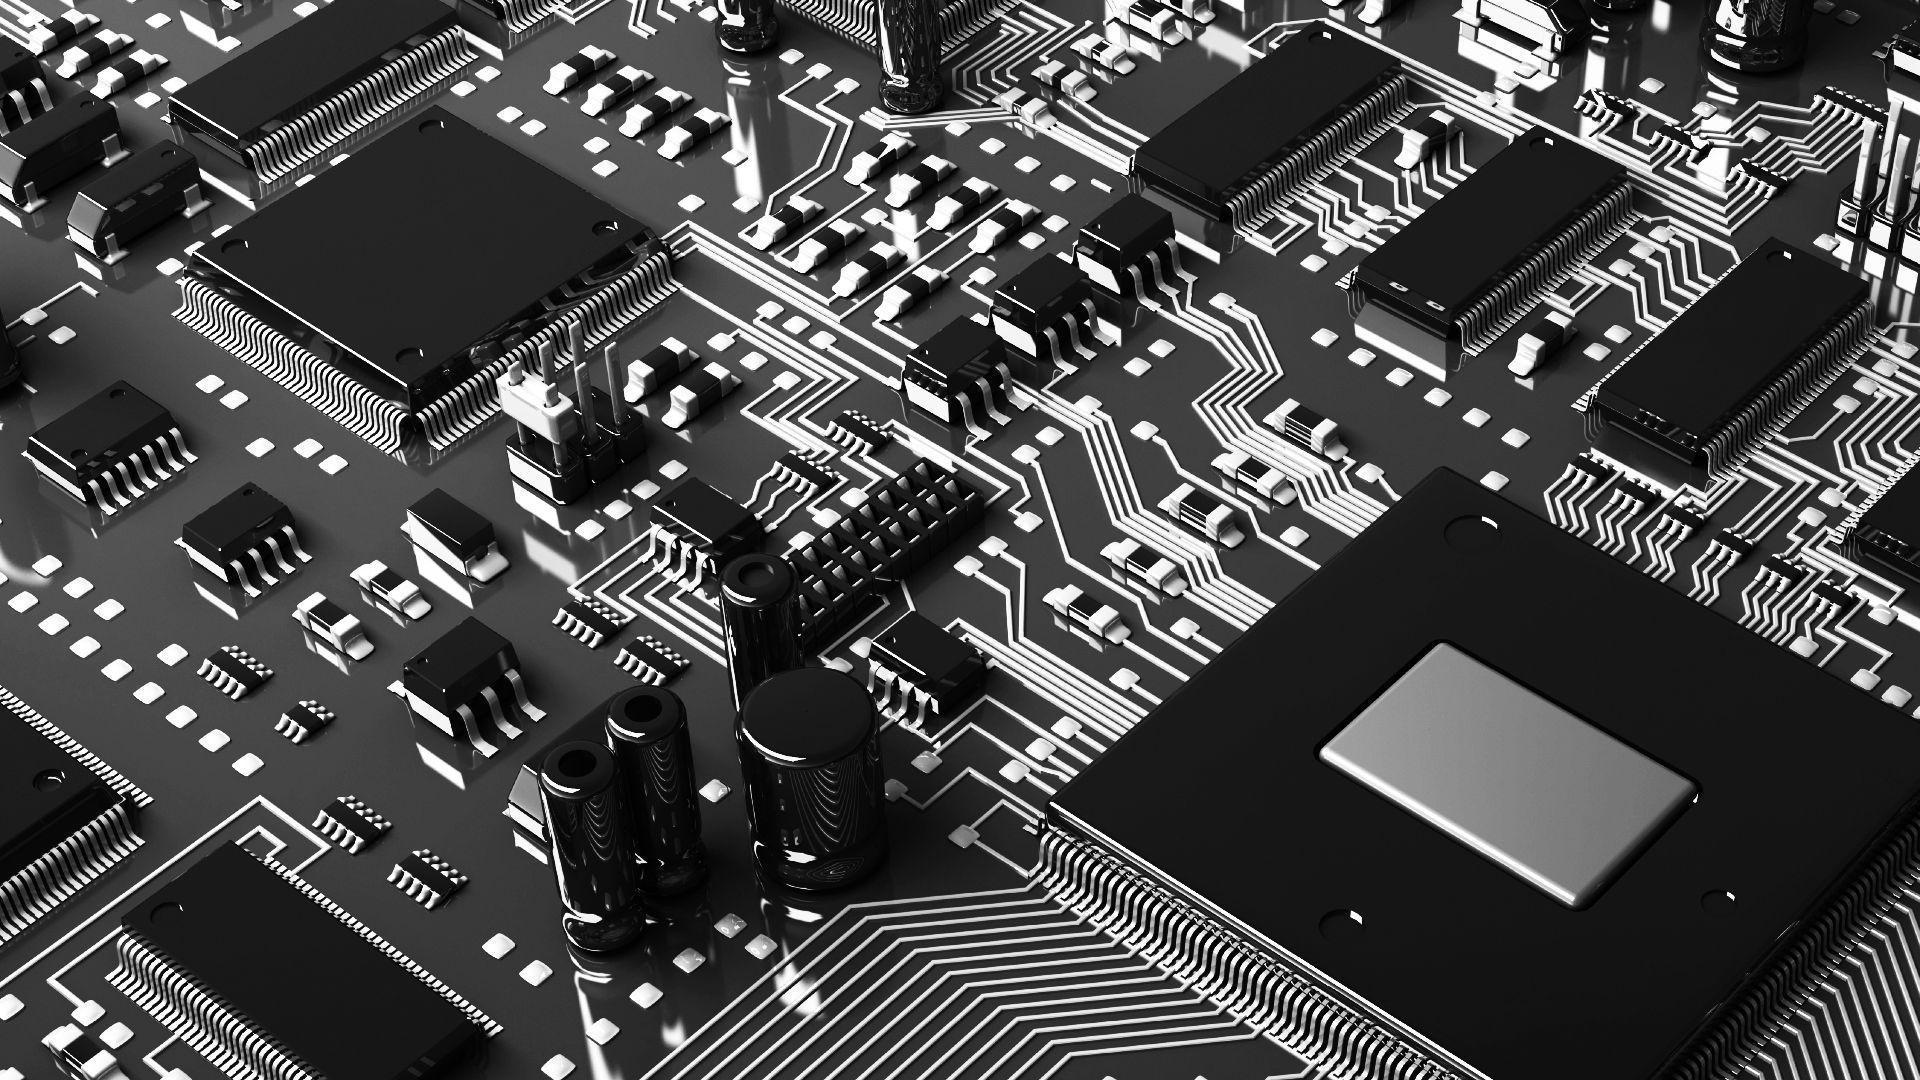 Motherboard HD Wallpaper | 1920x1080 | ID:35121